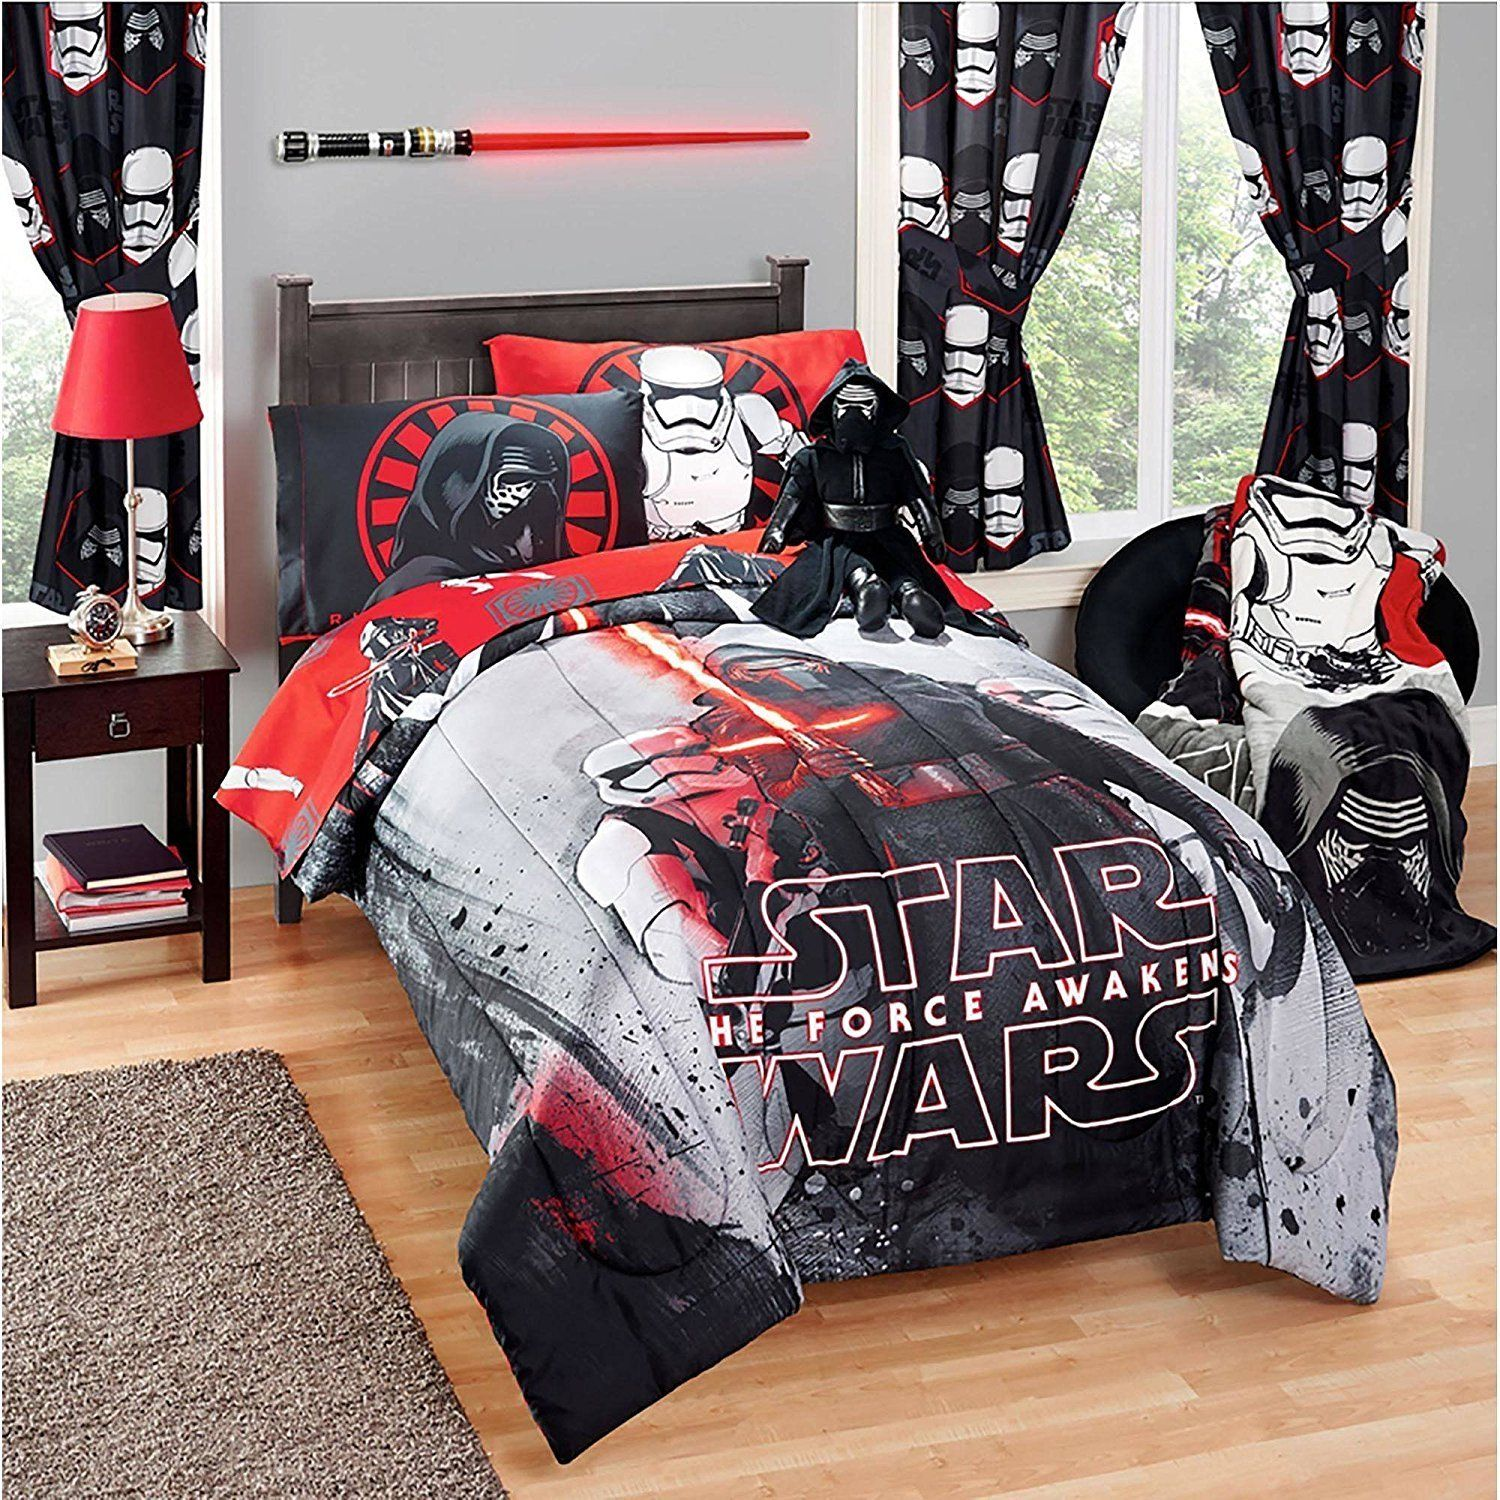 set star wars twin comforter sheet lego full bedding queen poster canada